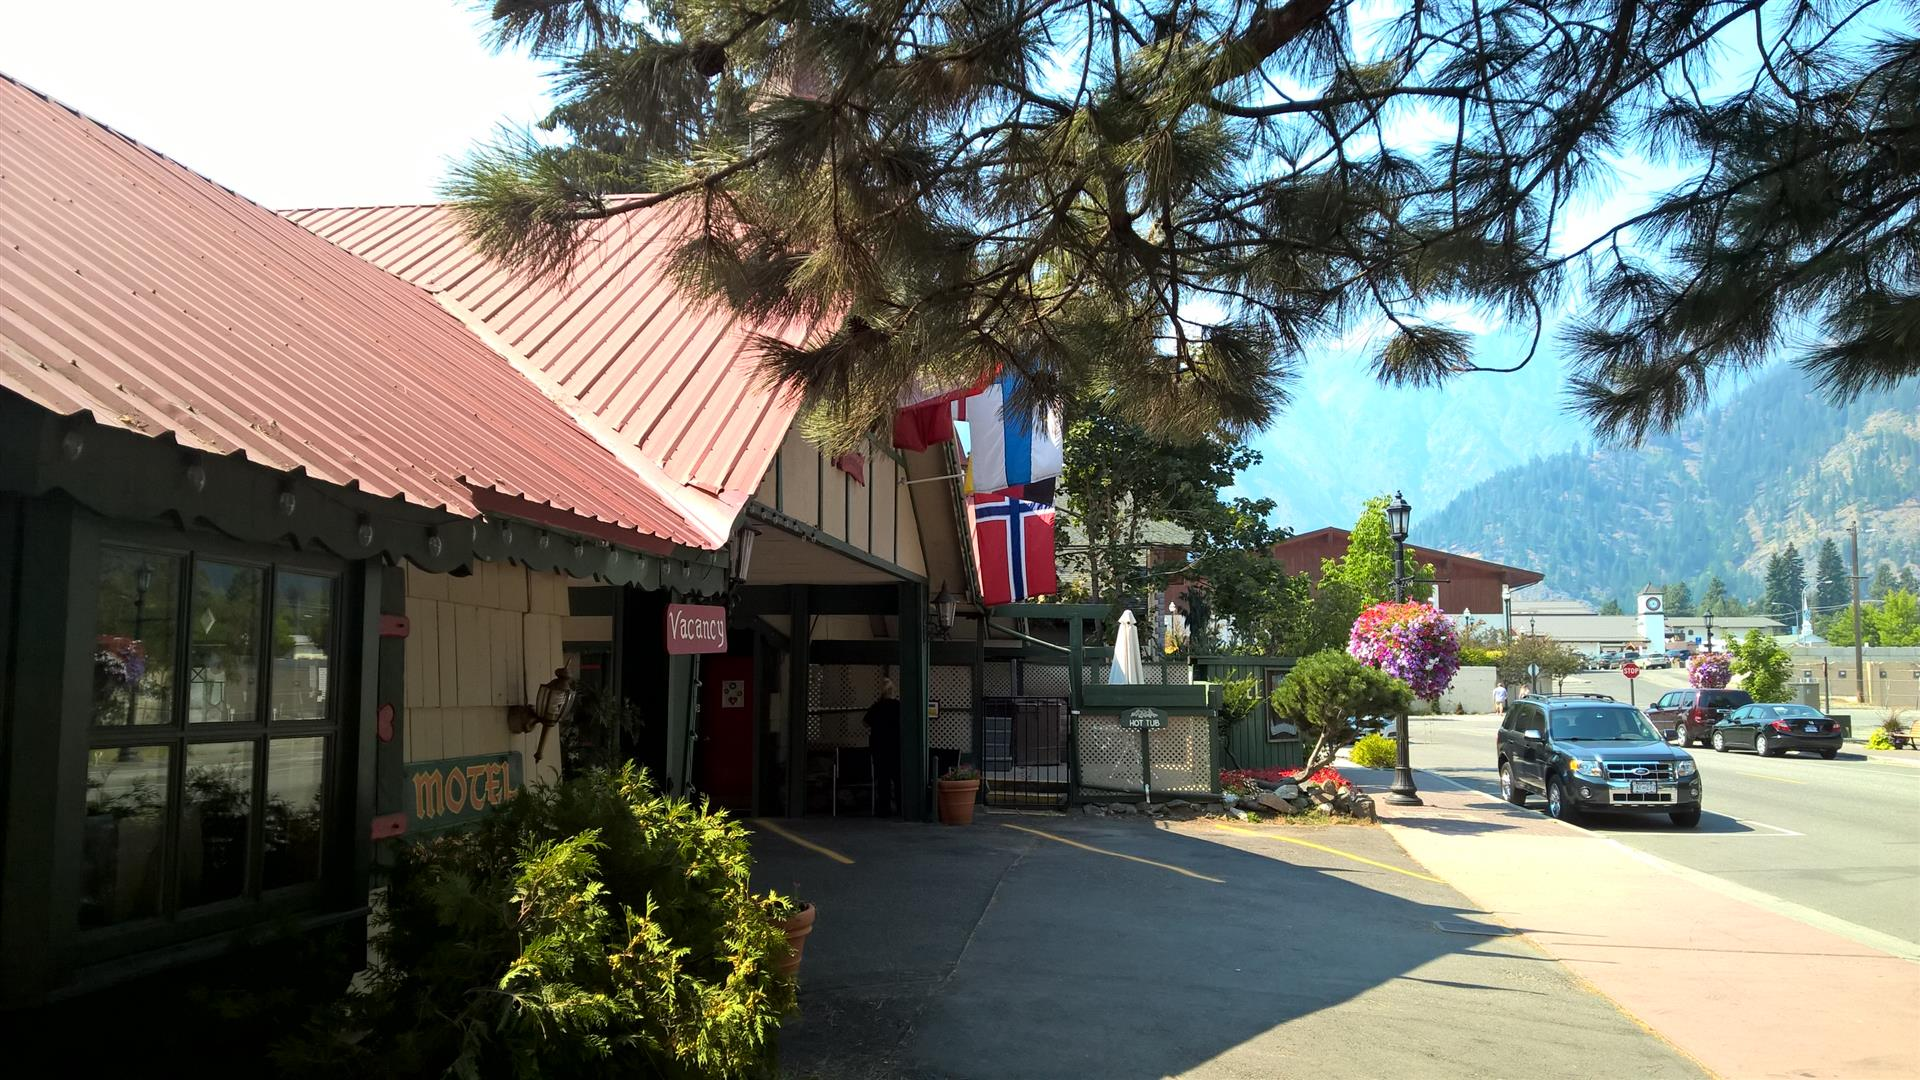 Norwegian flag in Leavenworth